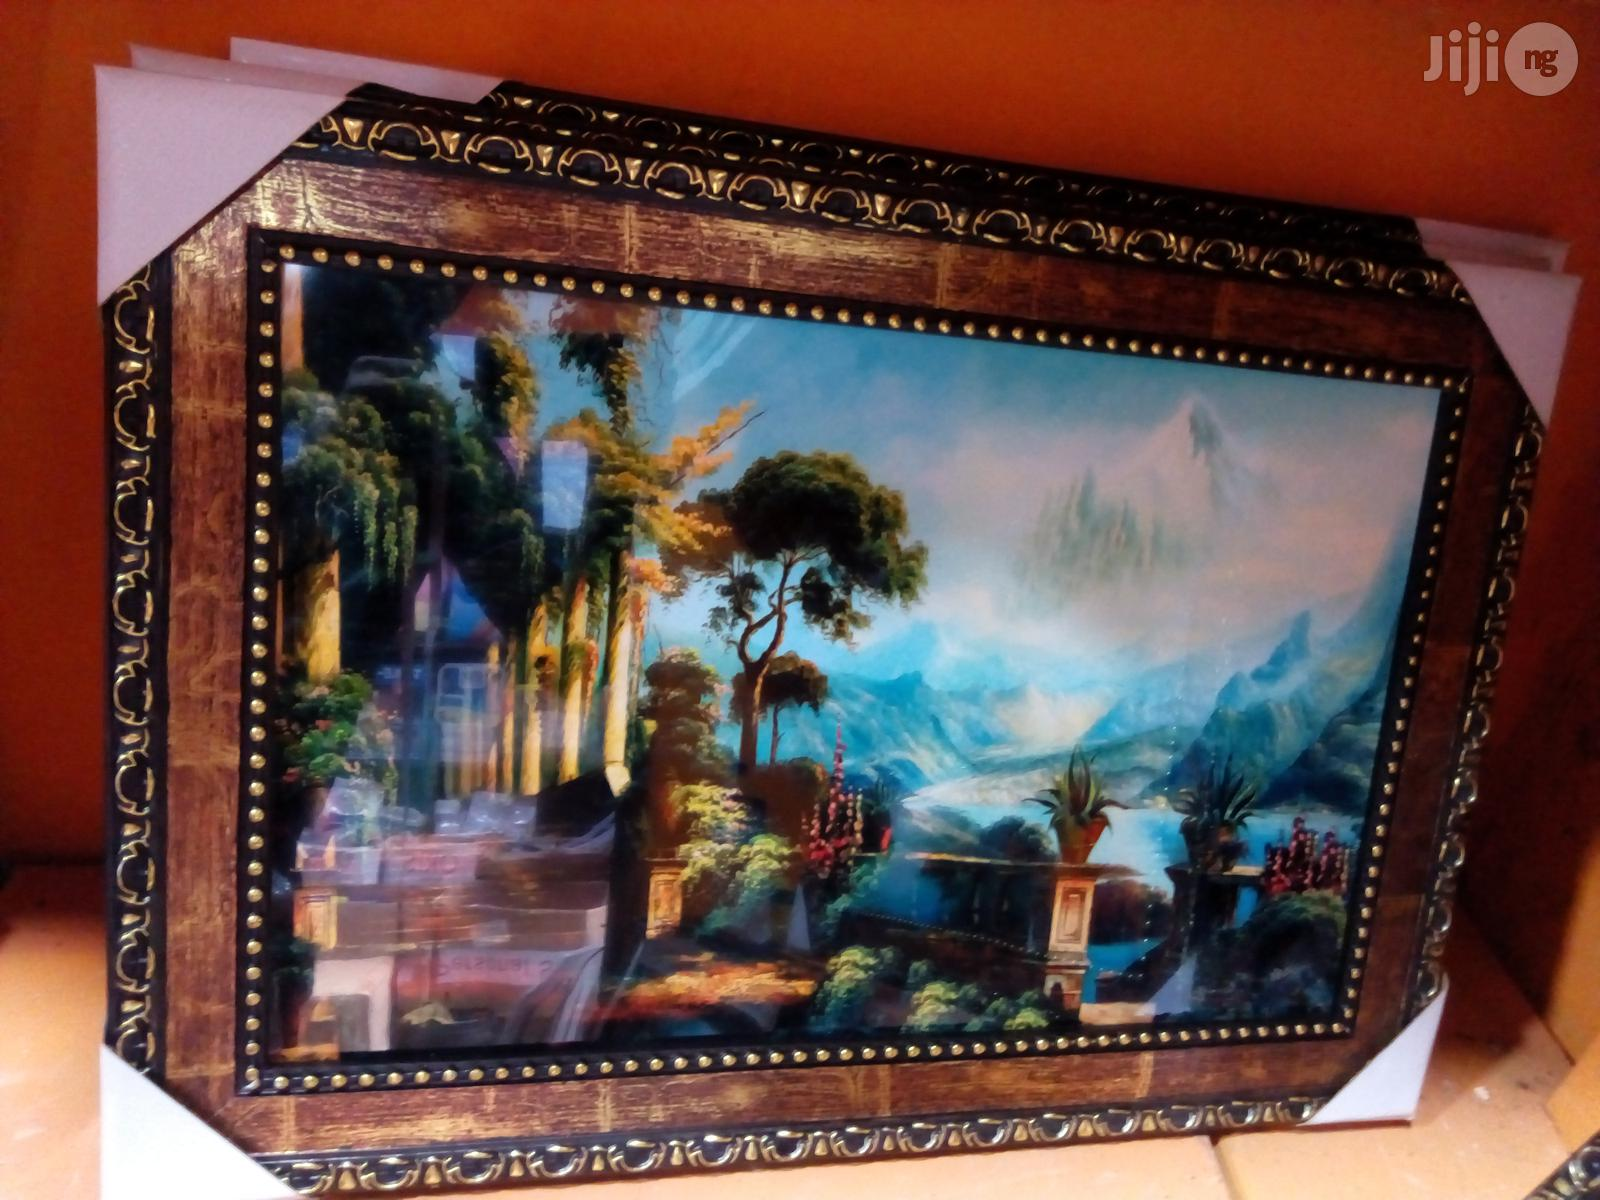 Wall Frame 28inch Long by 18inches Height -$#Sdd4r5   Arts & Crafts for sale in Amuwo-Odofin, Lagos State, Nigeria